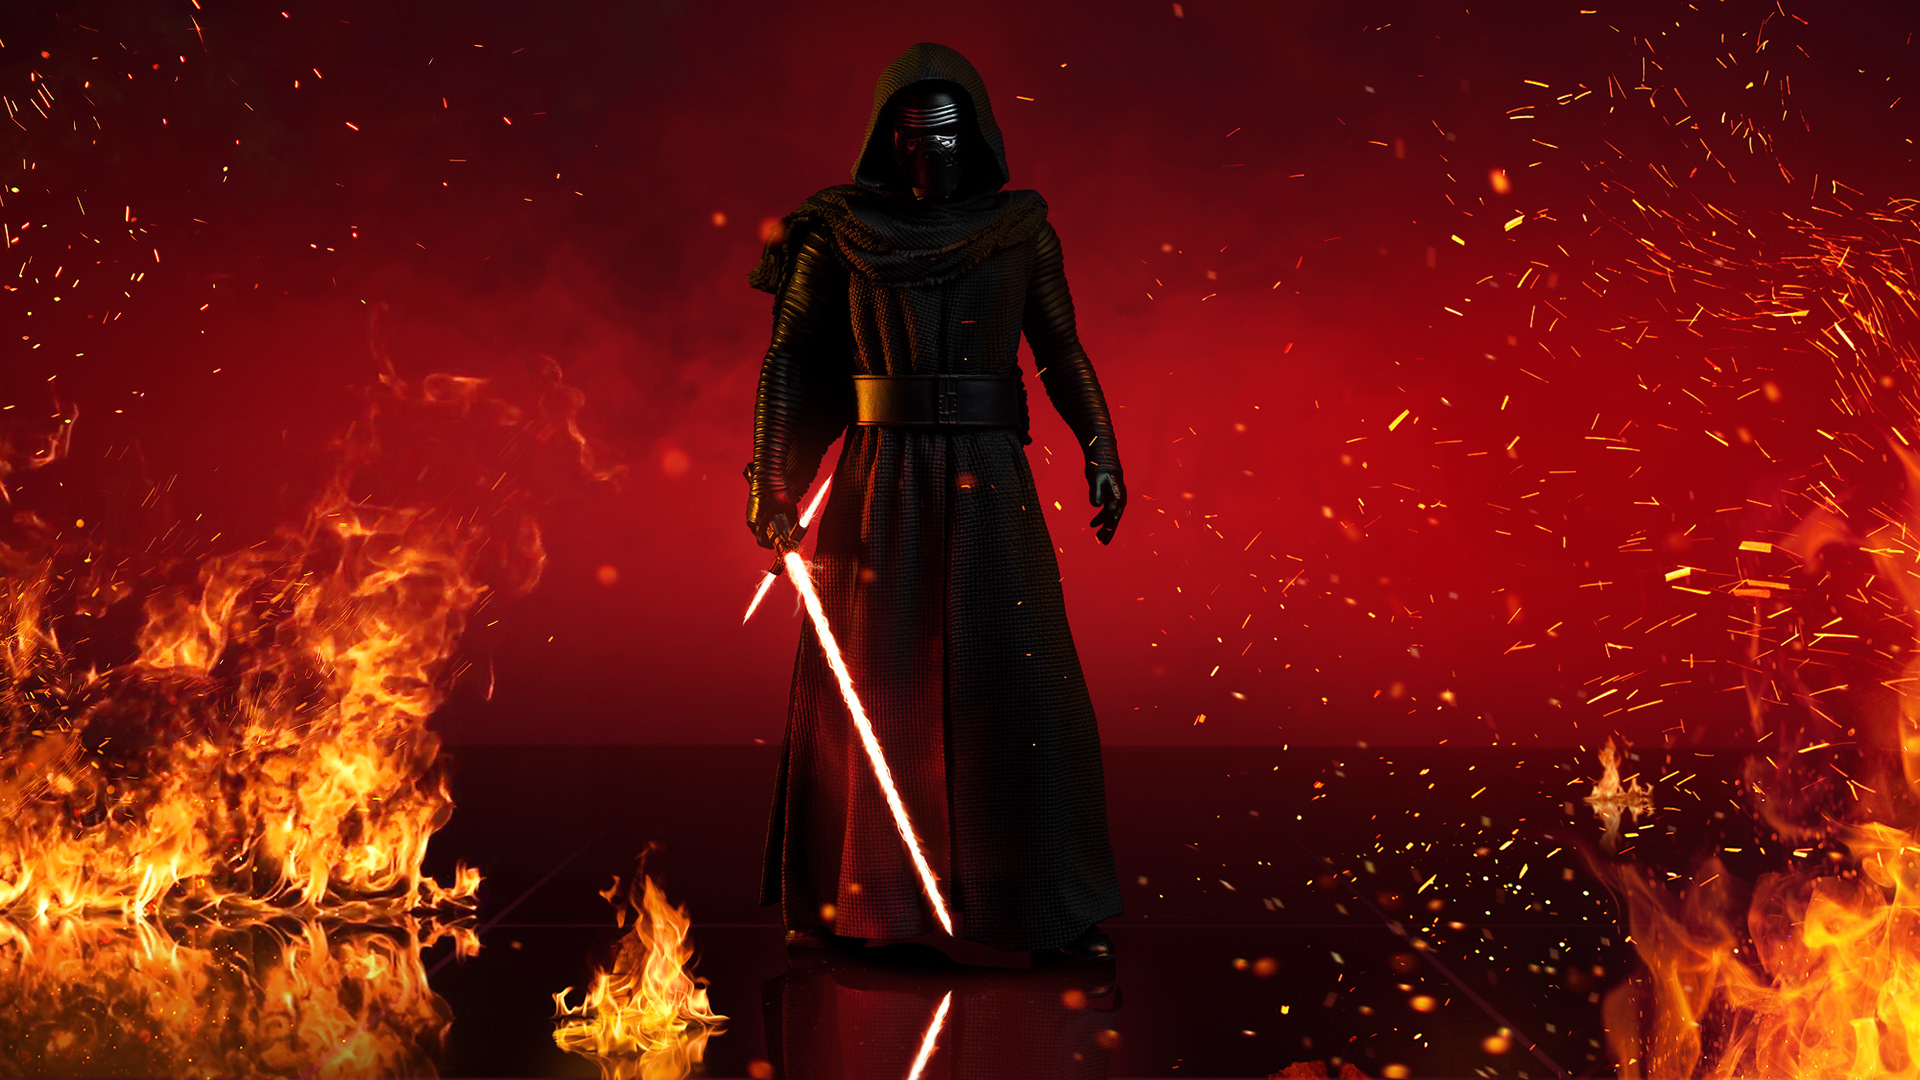 Kylo Ren With Lightsaber In Star Wars Wallpaper Hd Movies